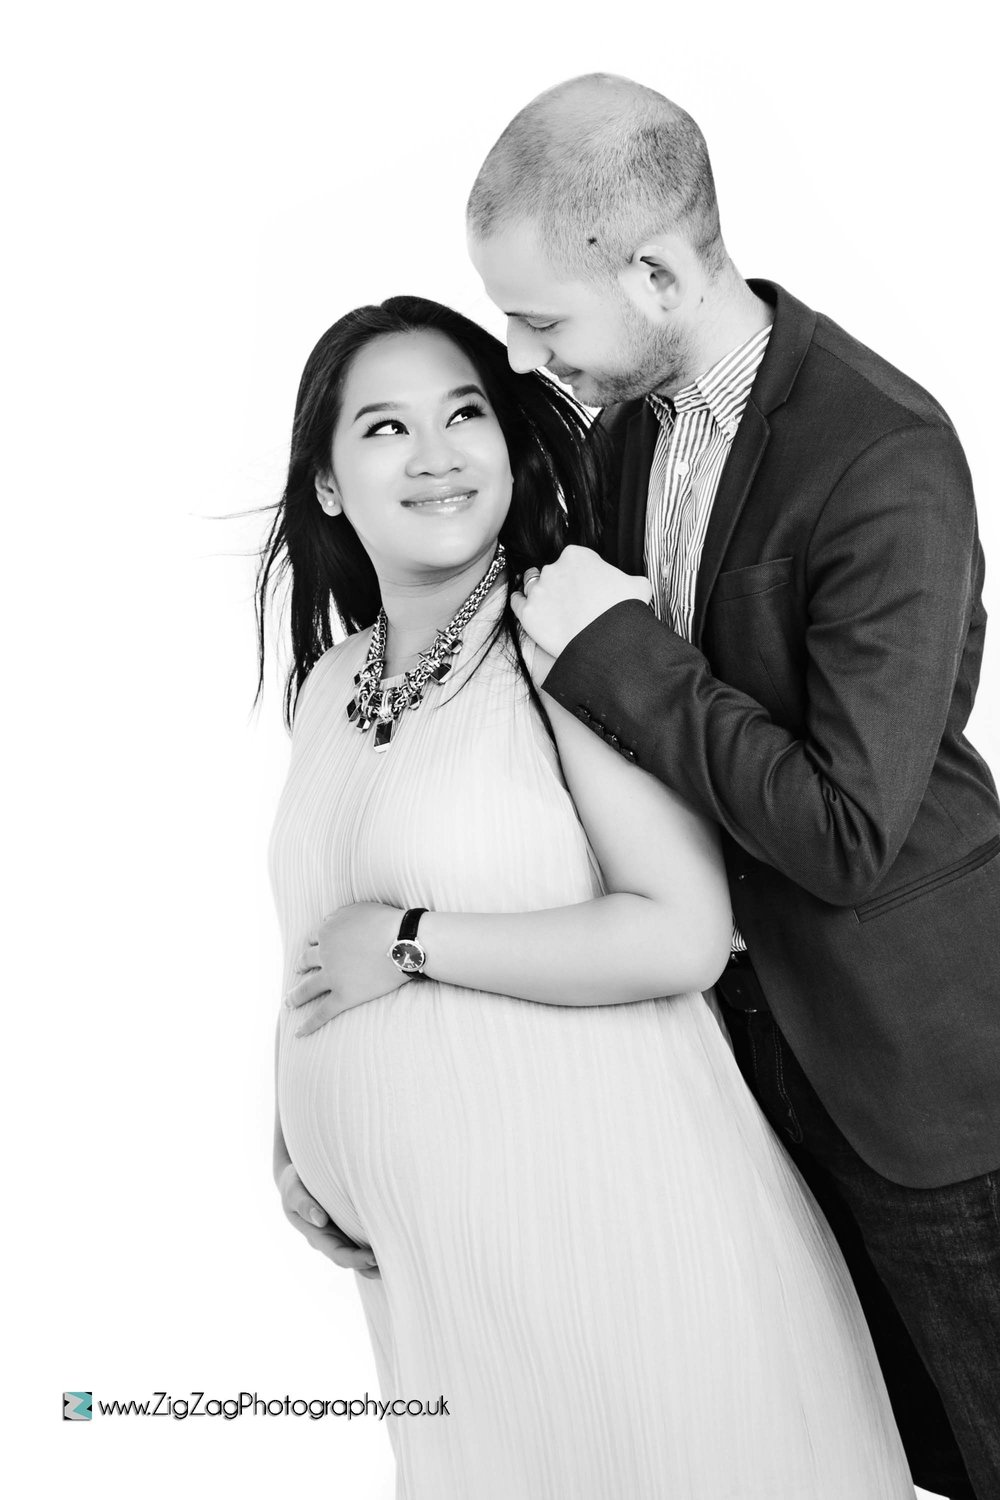 photoshoot-couple-bump-pregnancy-blackandwhite-photography-leicester.jpg